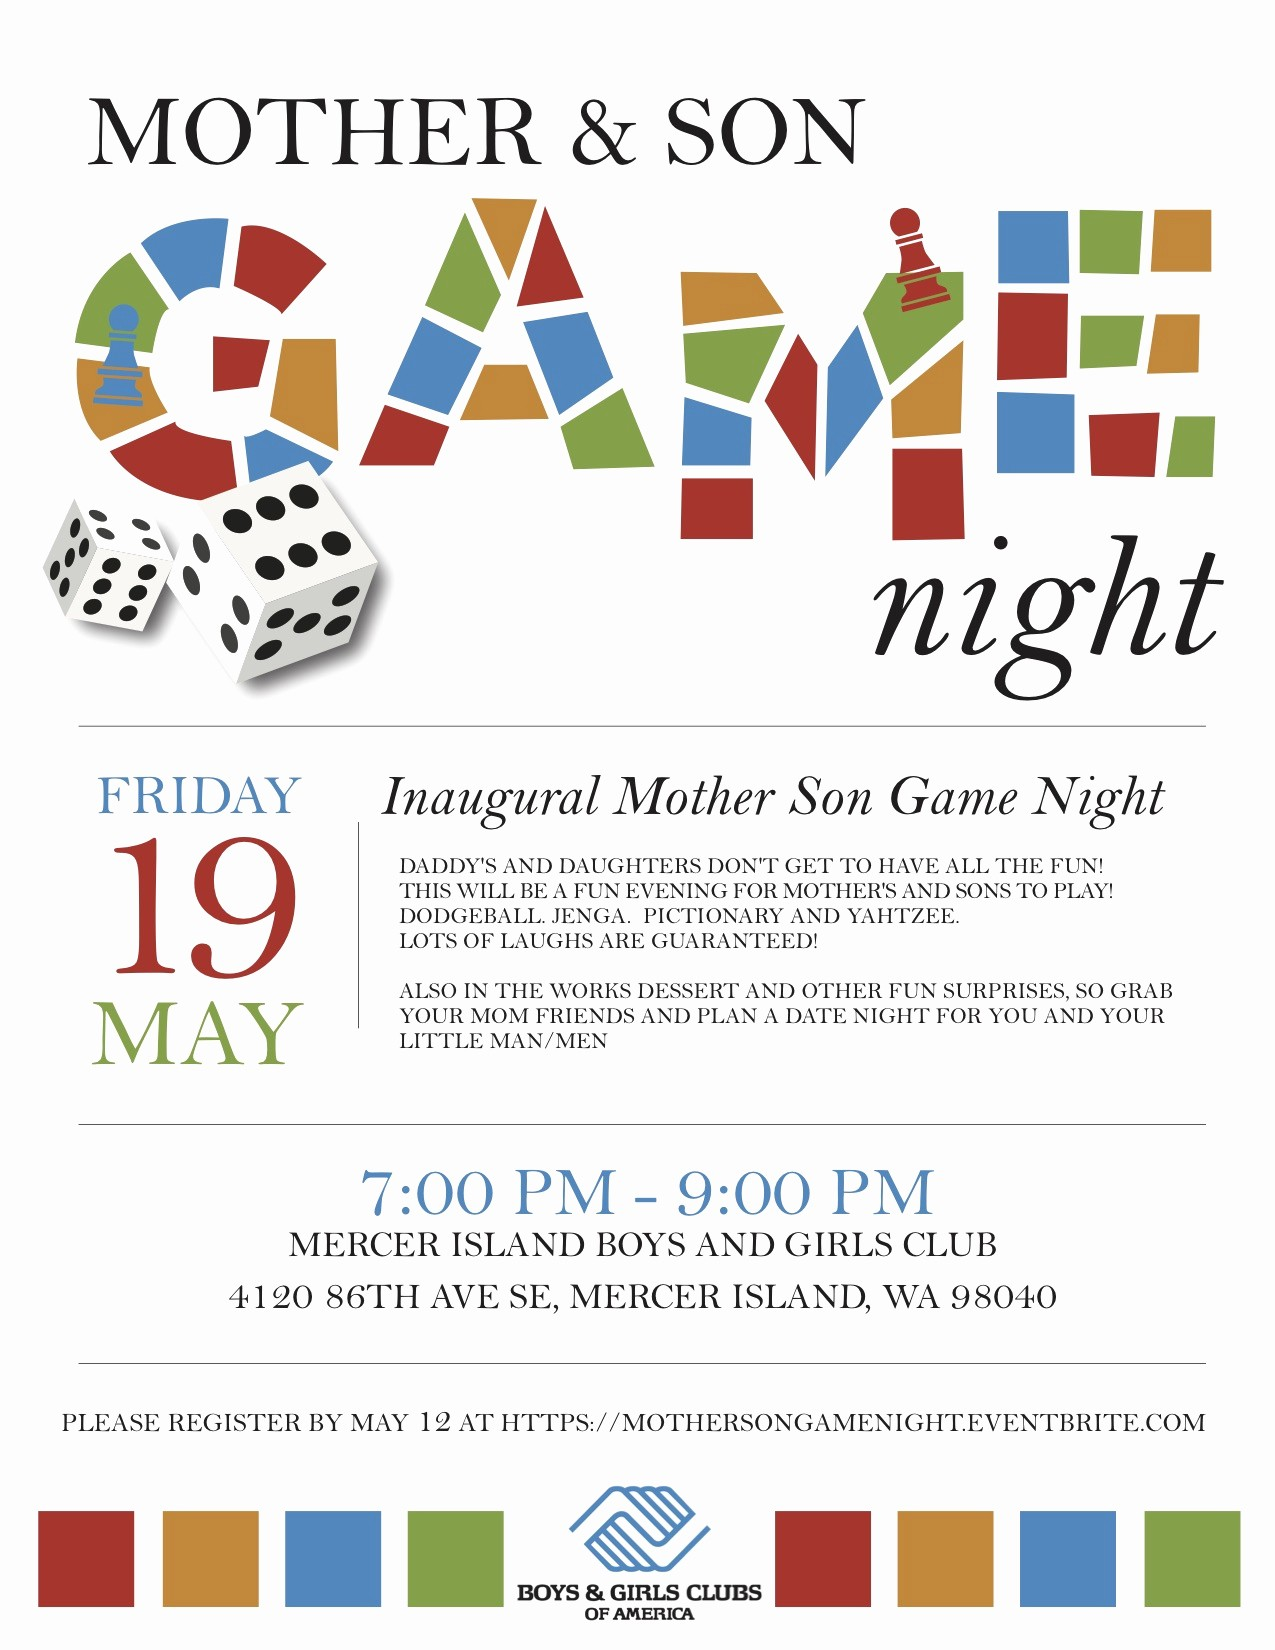 Board Game Night Flyer Template Beautiful Mother & son Game Night